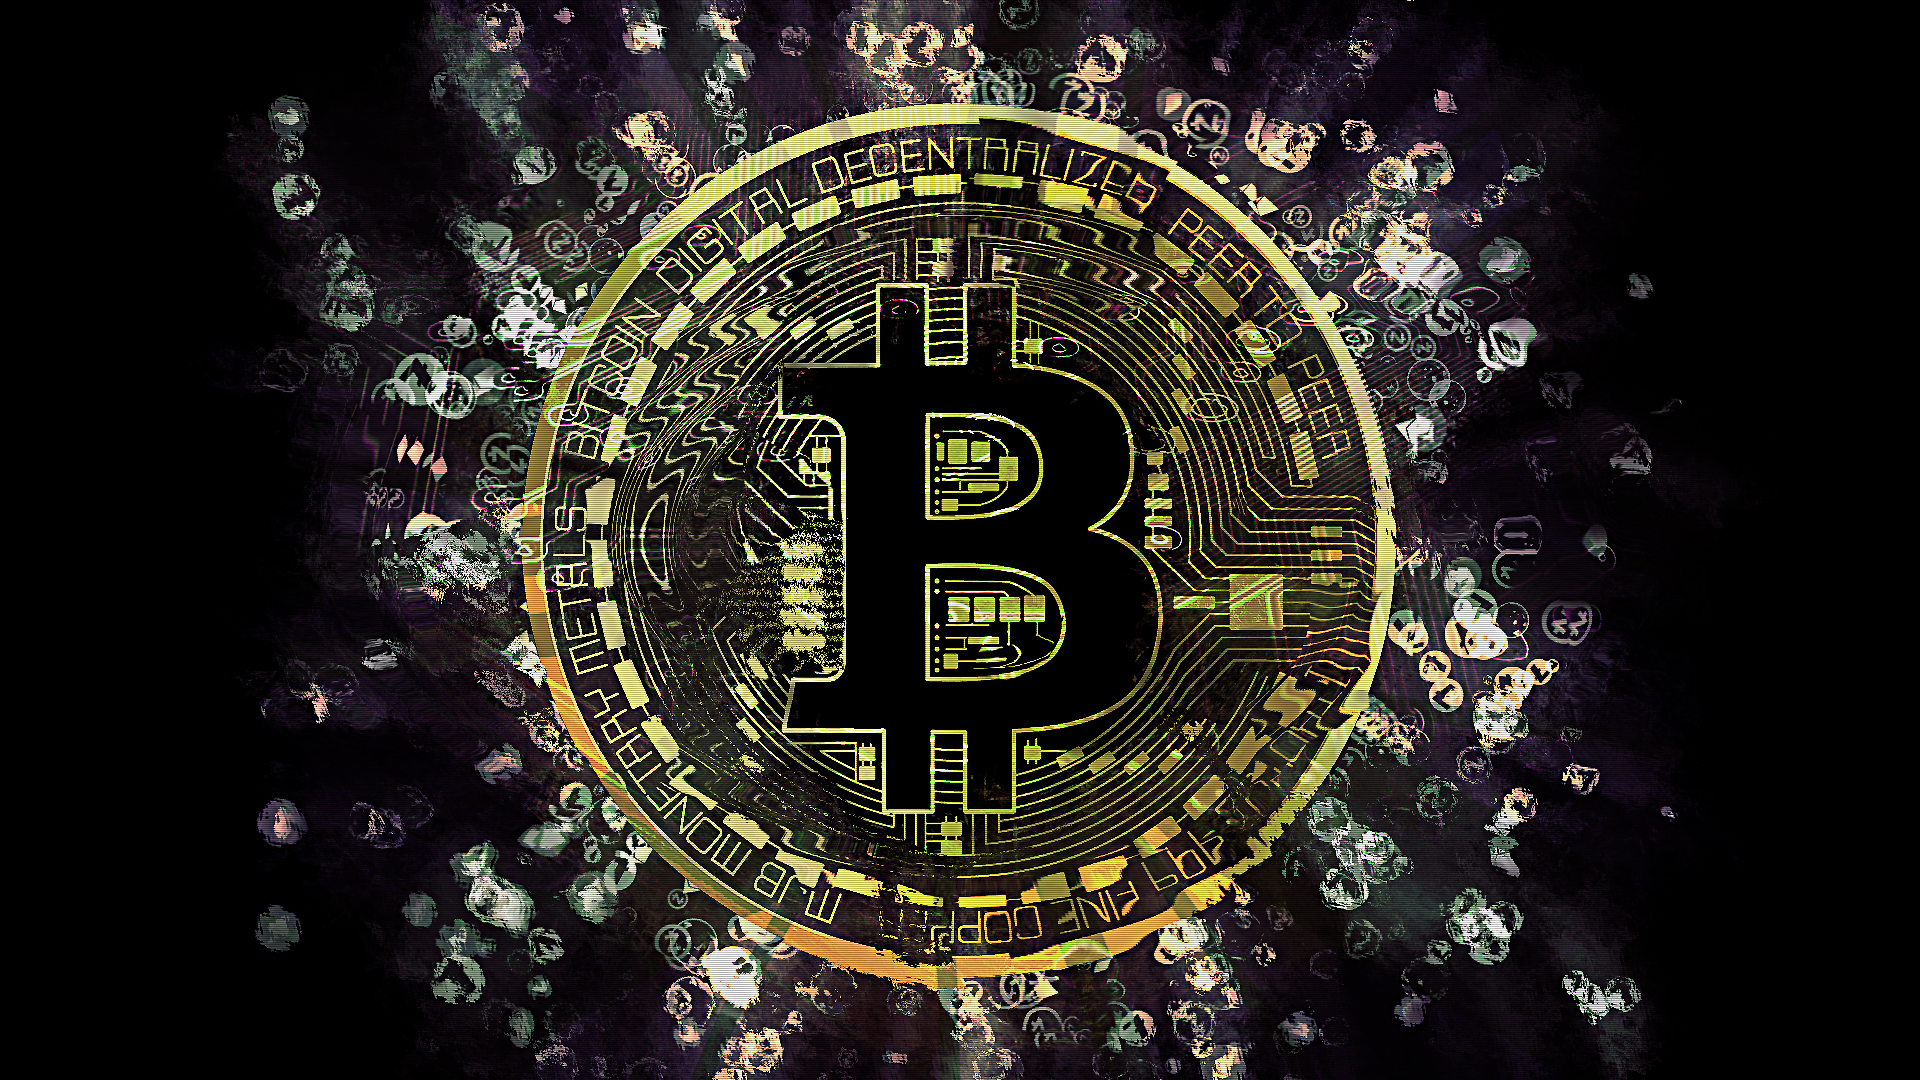 General 1920x1080 Bitcoin cryptocurrency currency money